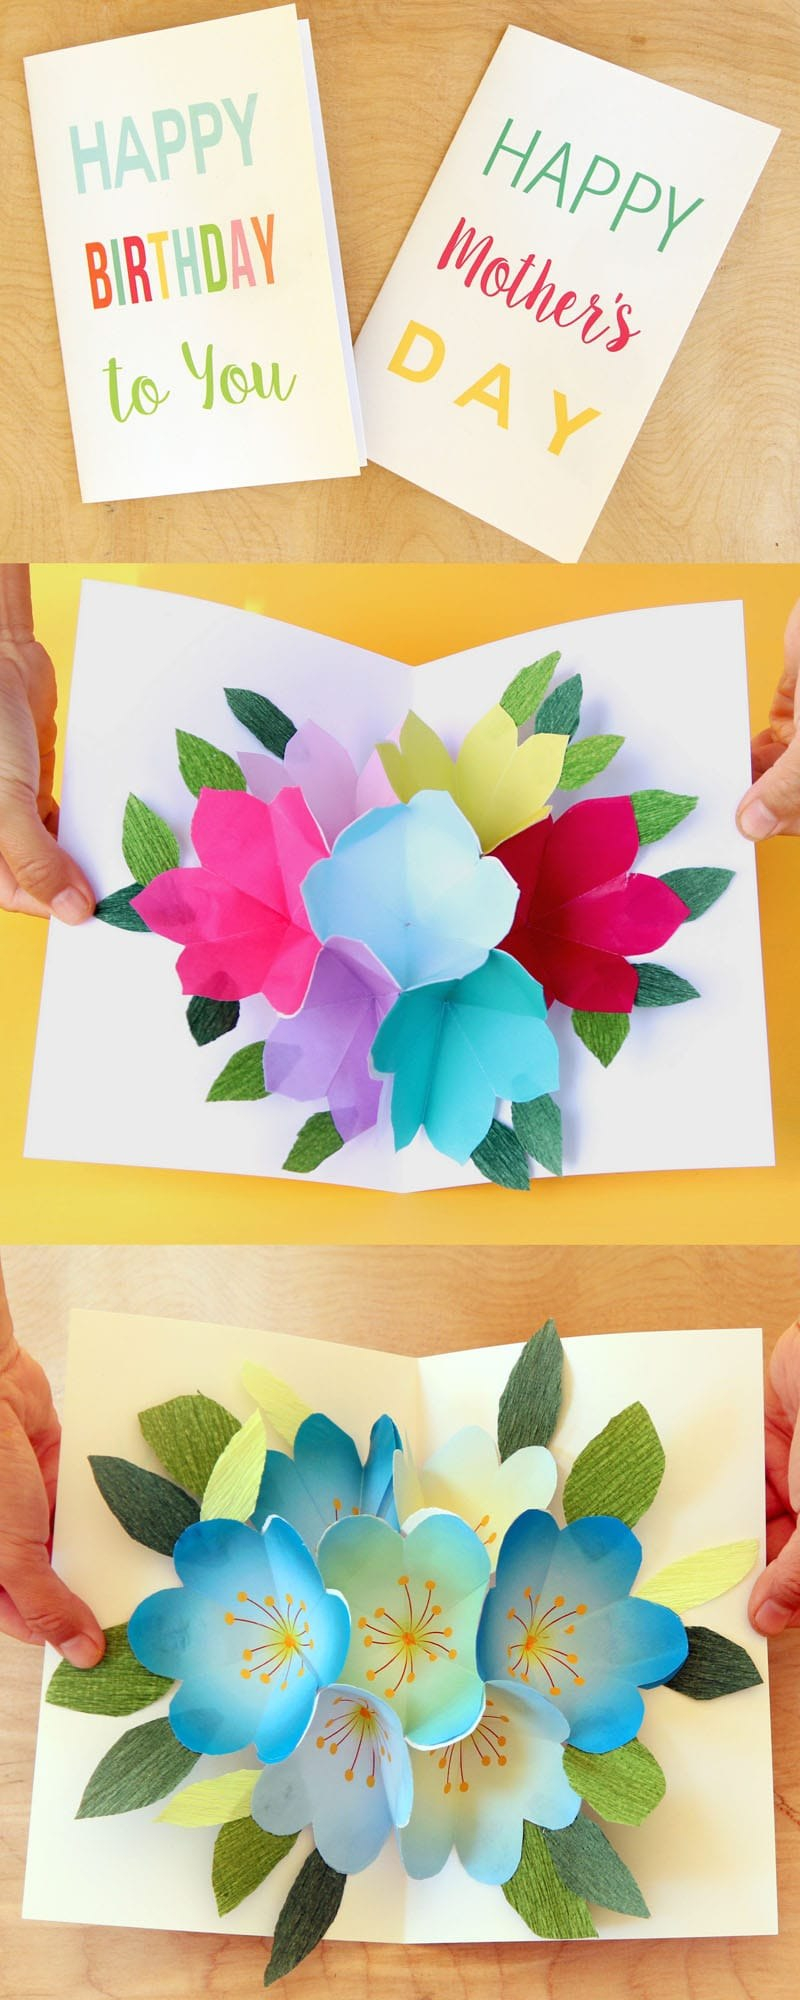 Free Printable Happy Birthday Card With Pop Up Bouquet  A Piece Of Throughout Pop Up Card Templates Free Printable